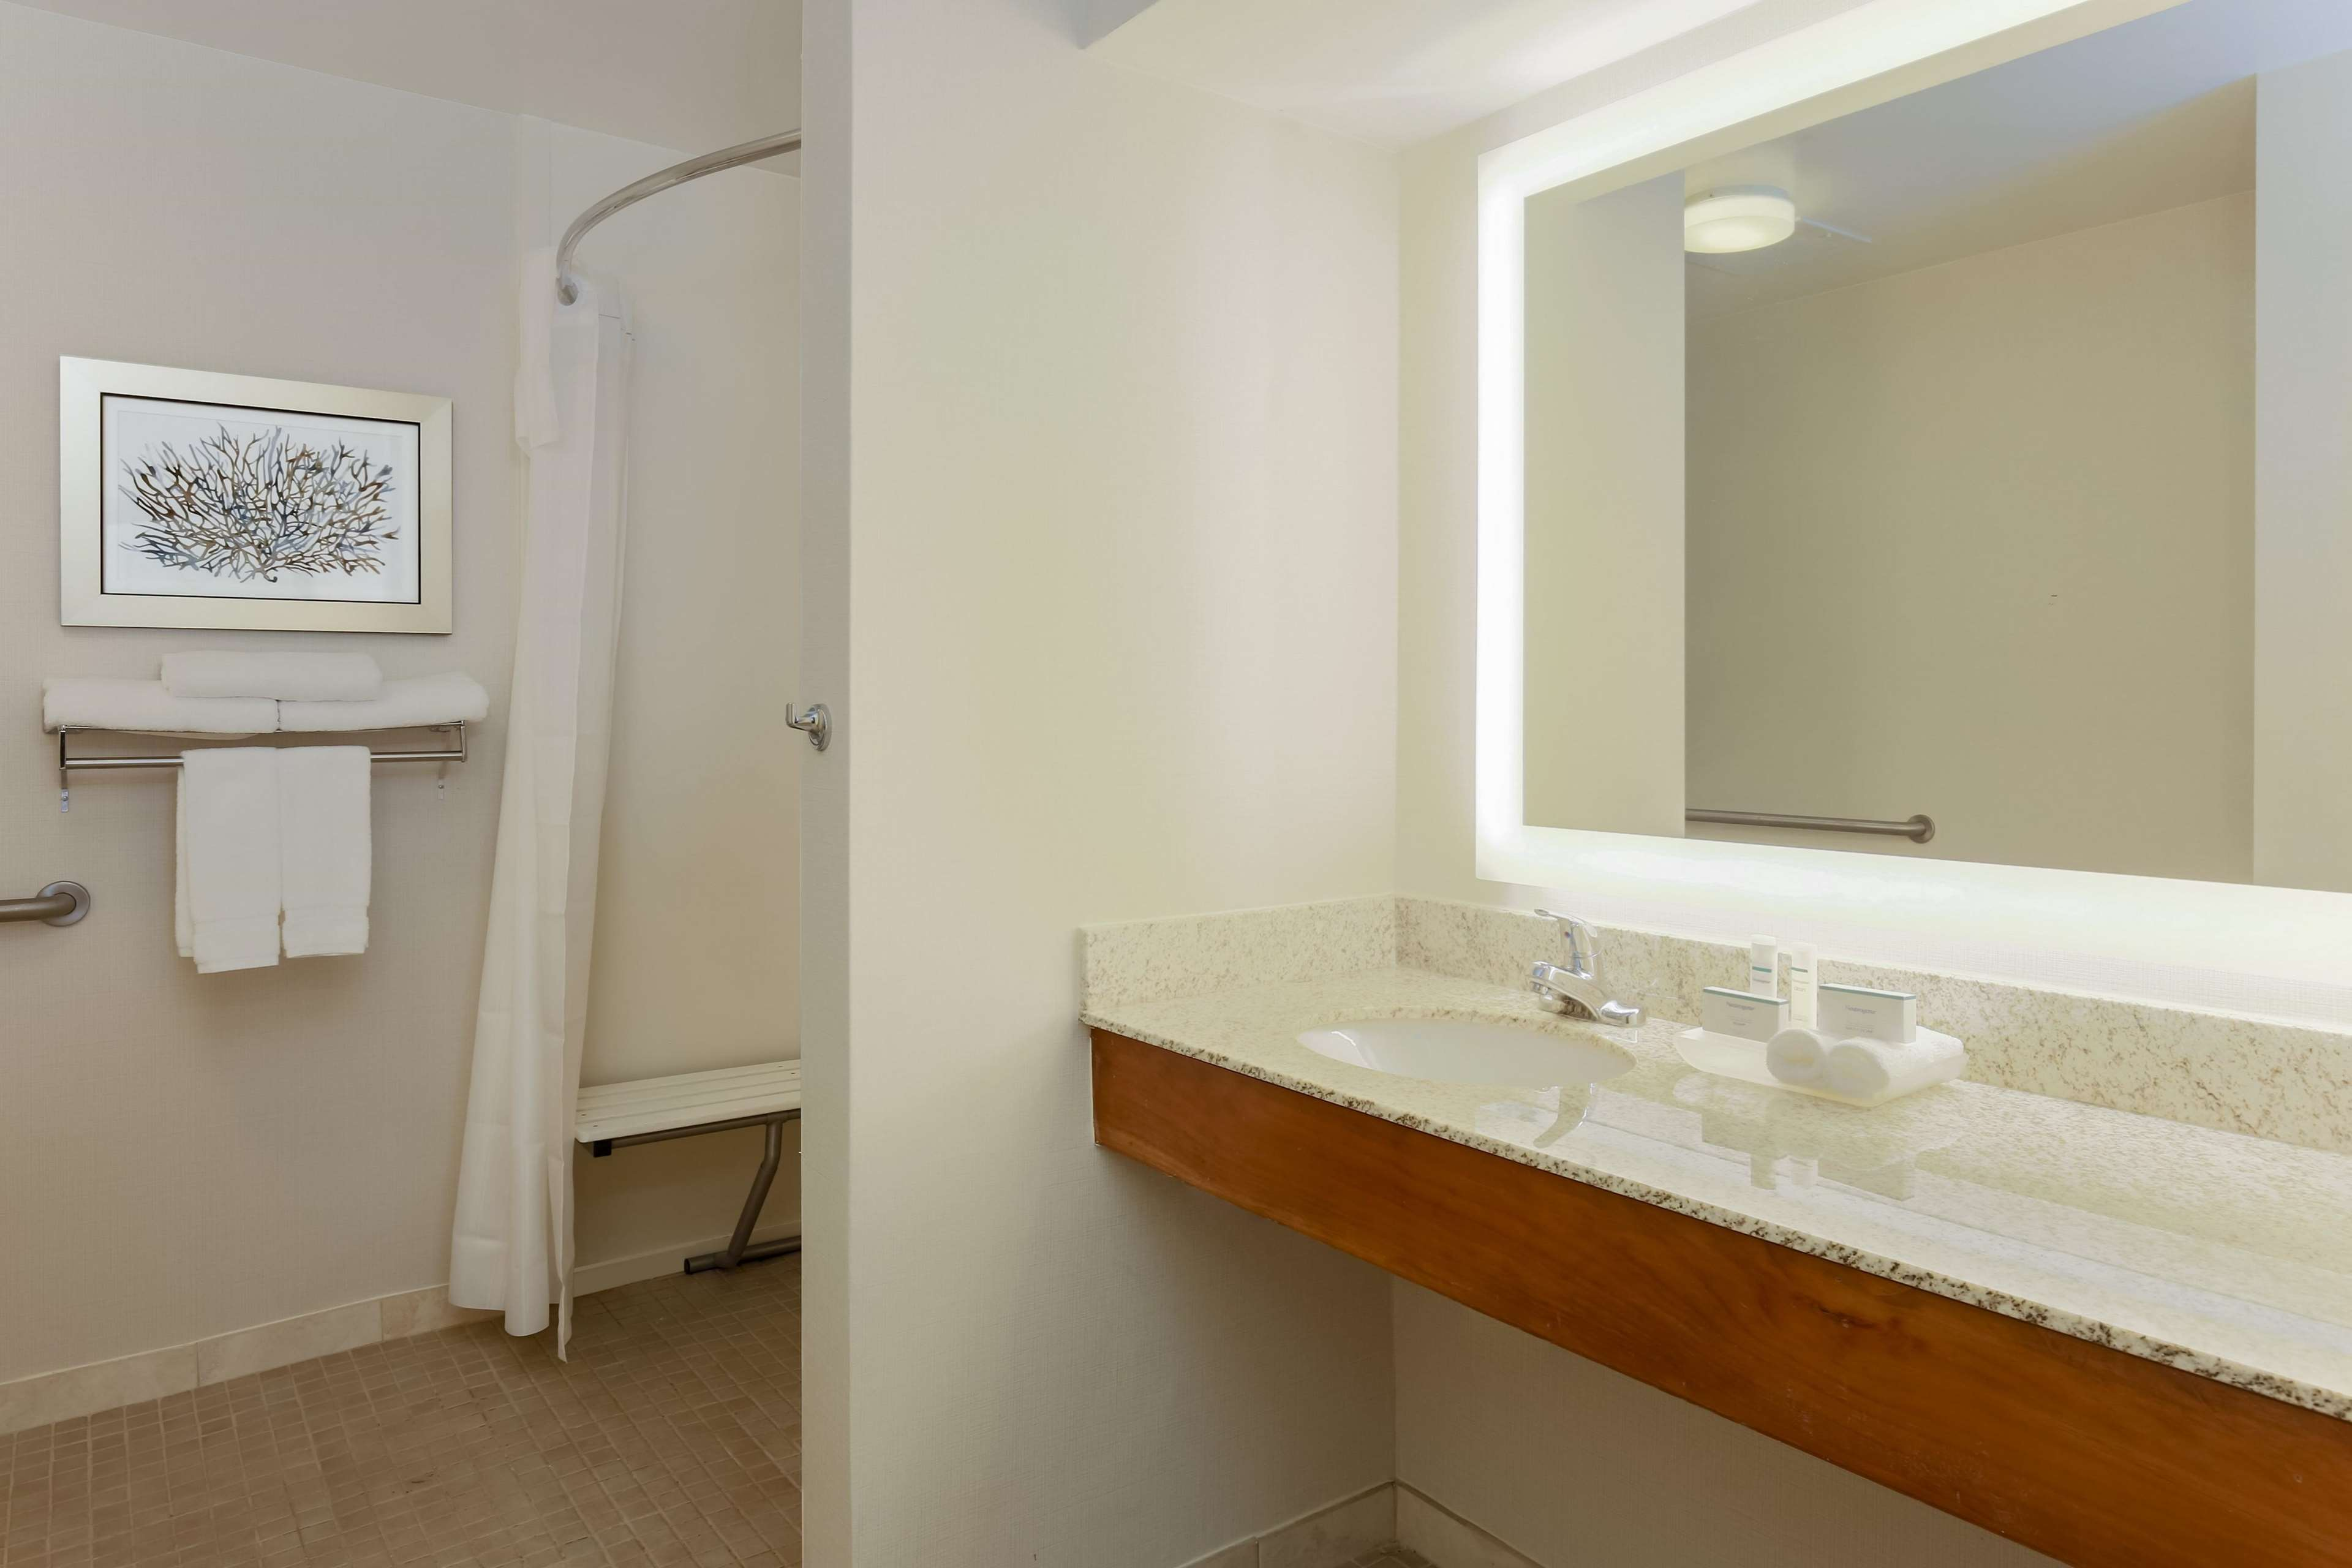 Homewood Suites by Hilton St. Petersburg Clearwater image 9